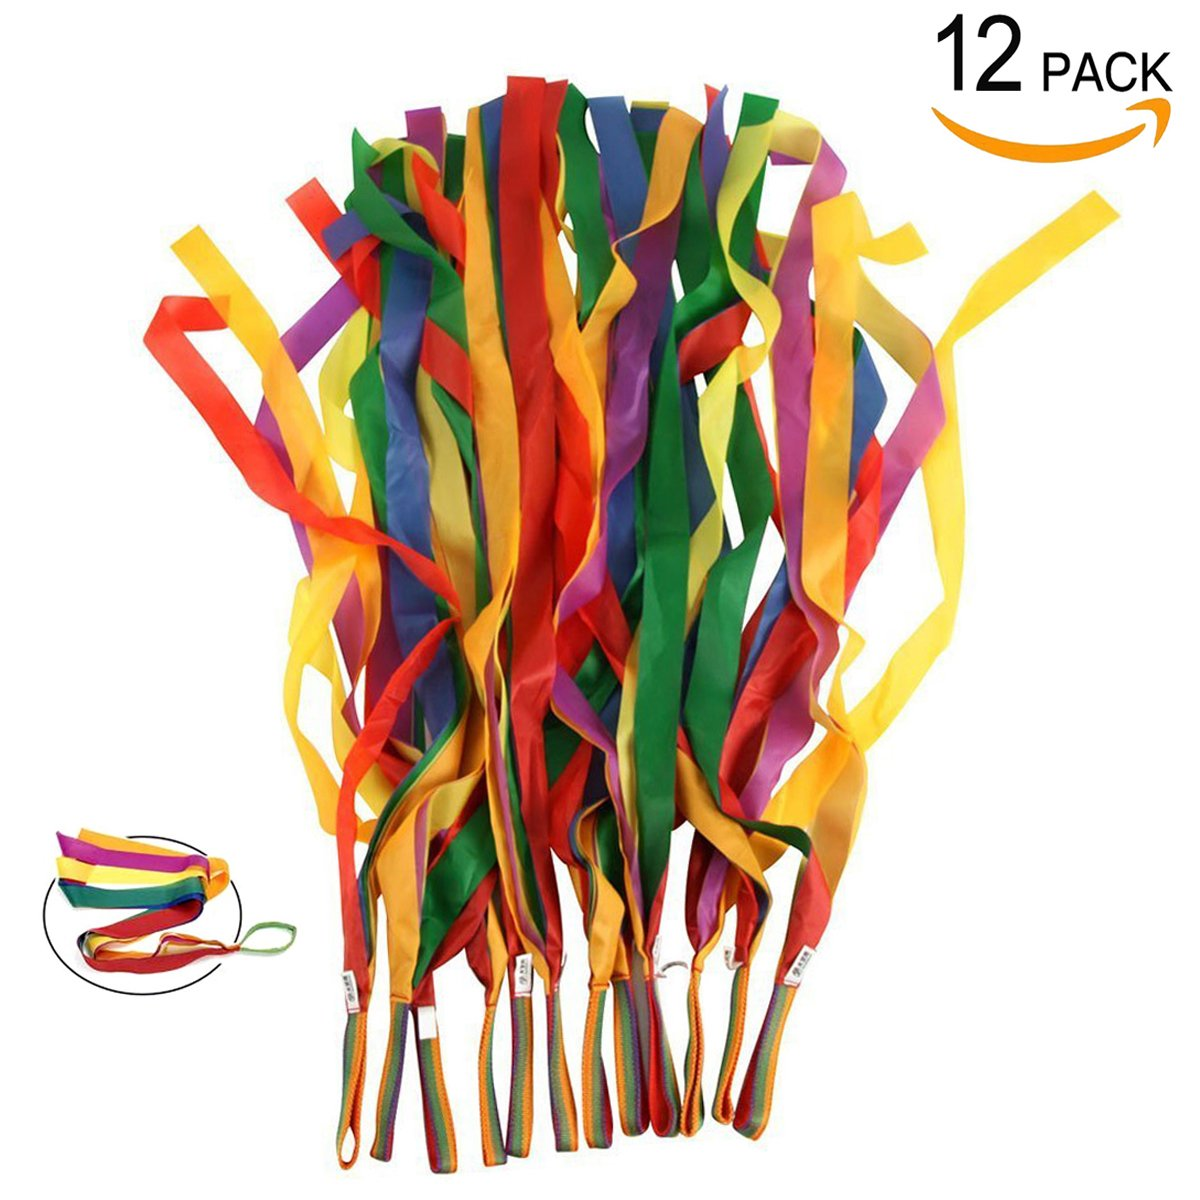 Rainbow Dance Ribbons, LANREN 12PCS Rhythm Ribbon Streamers for Baby Kids Children Adults - Bright & Multi-colored